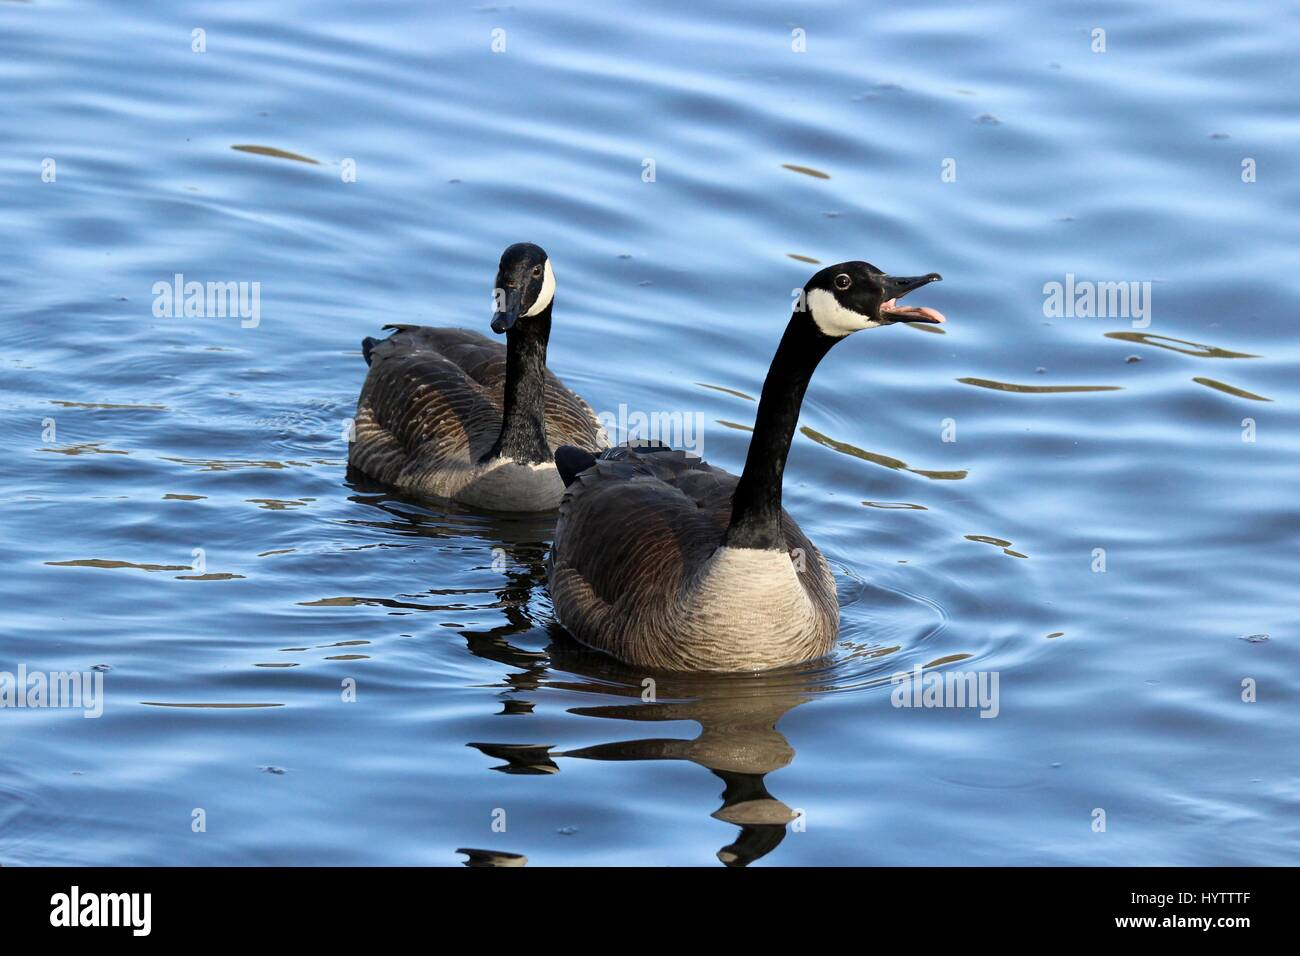 Two Canada Geese Branta canadensis honking at other birds to defend their territory on a lake - Stock Image